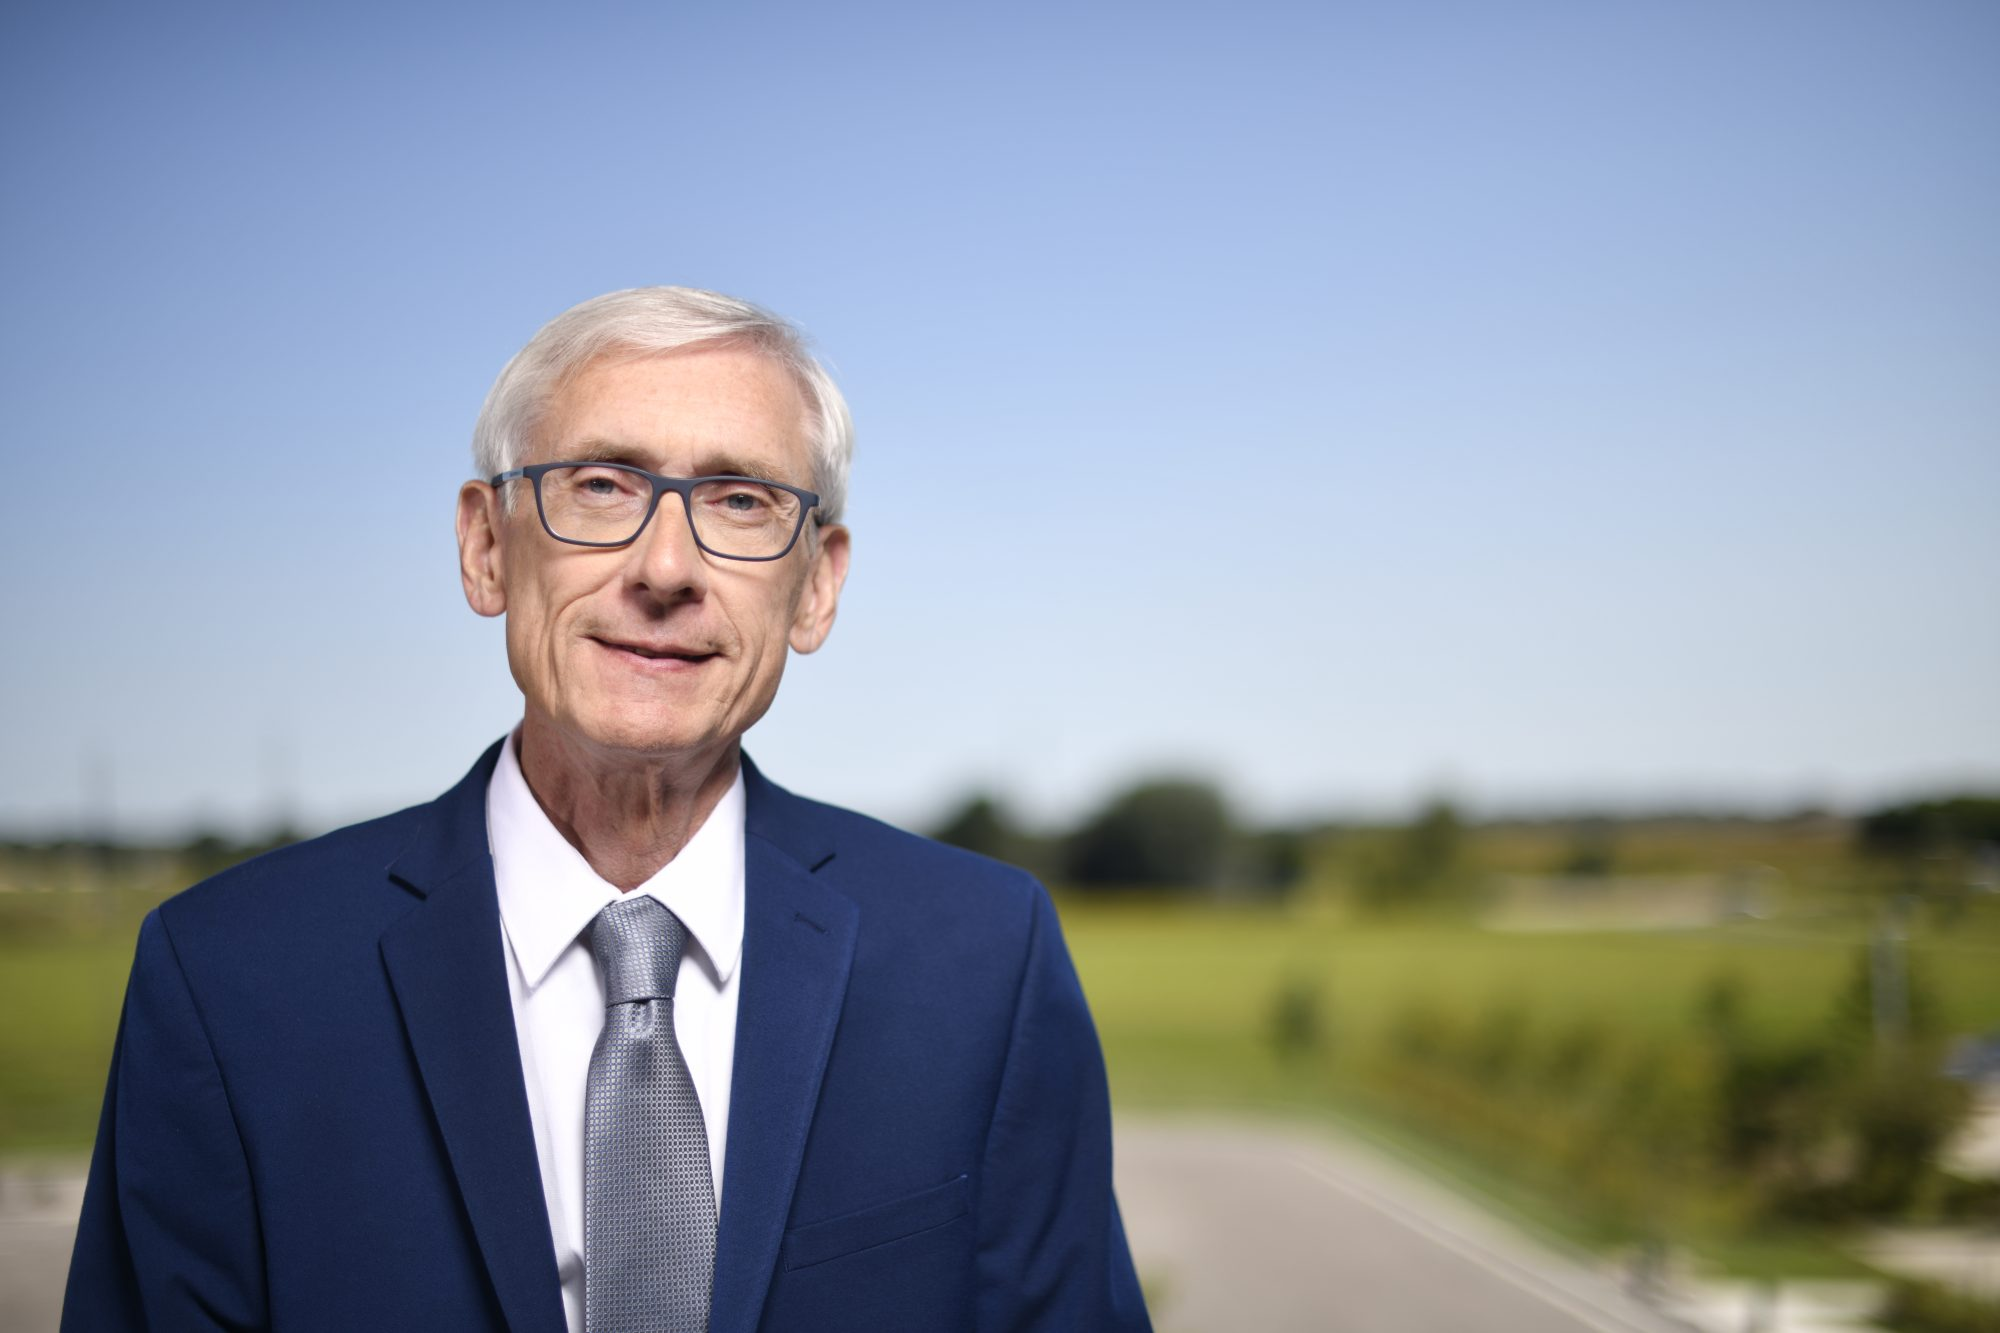 Gov. Evers Seeks Applicants for Register of Deeds of Rusk County